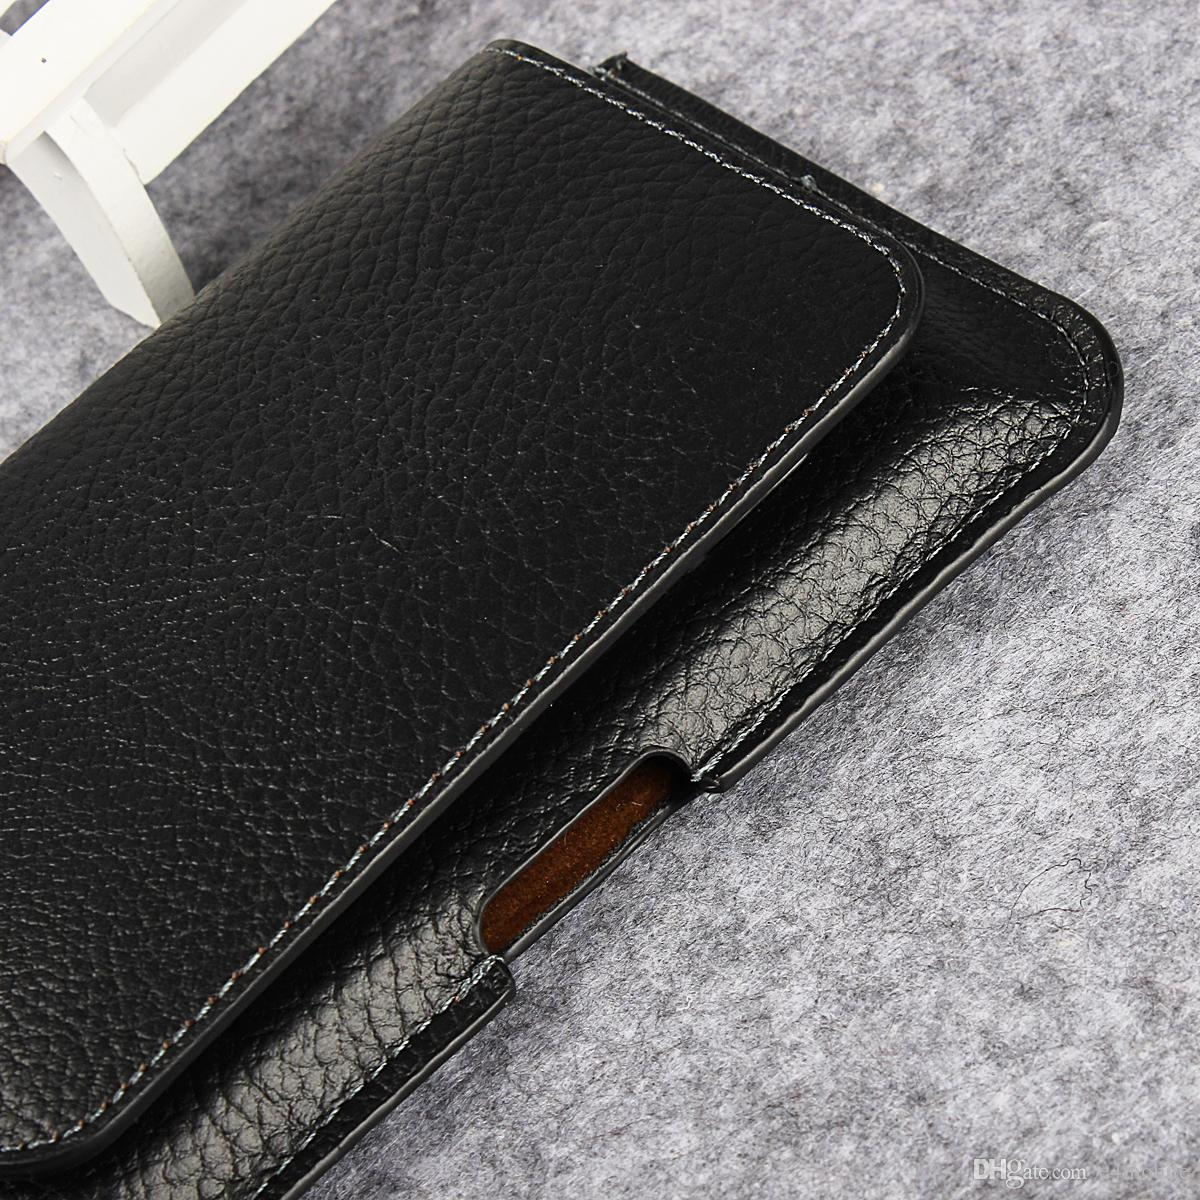 Belt Clip Leather Cell Phone Cases Pouch For LG V30/Q6/X venture/X power2/Stylus 3/K3 2017/K4 2017/K8 2017//V20/X5/X mach/Stylo 2